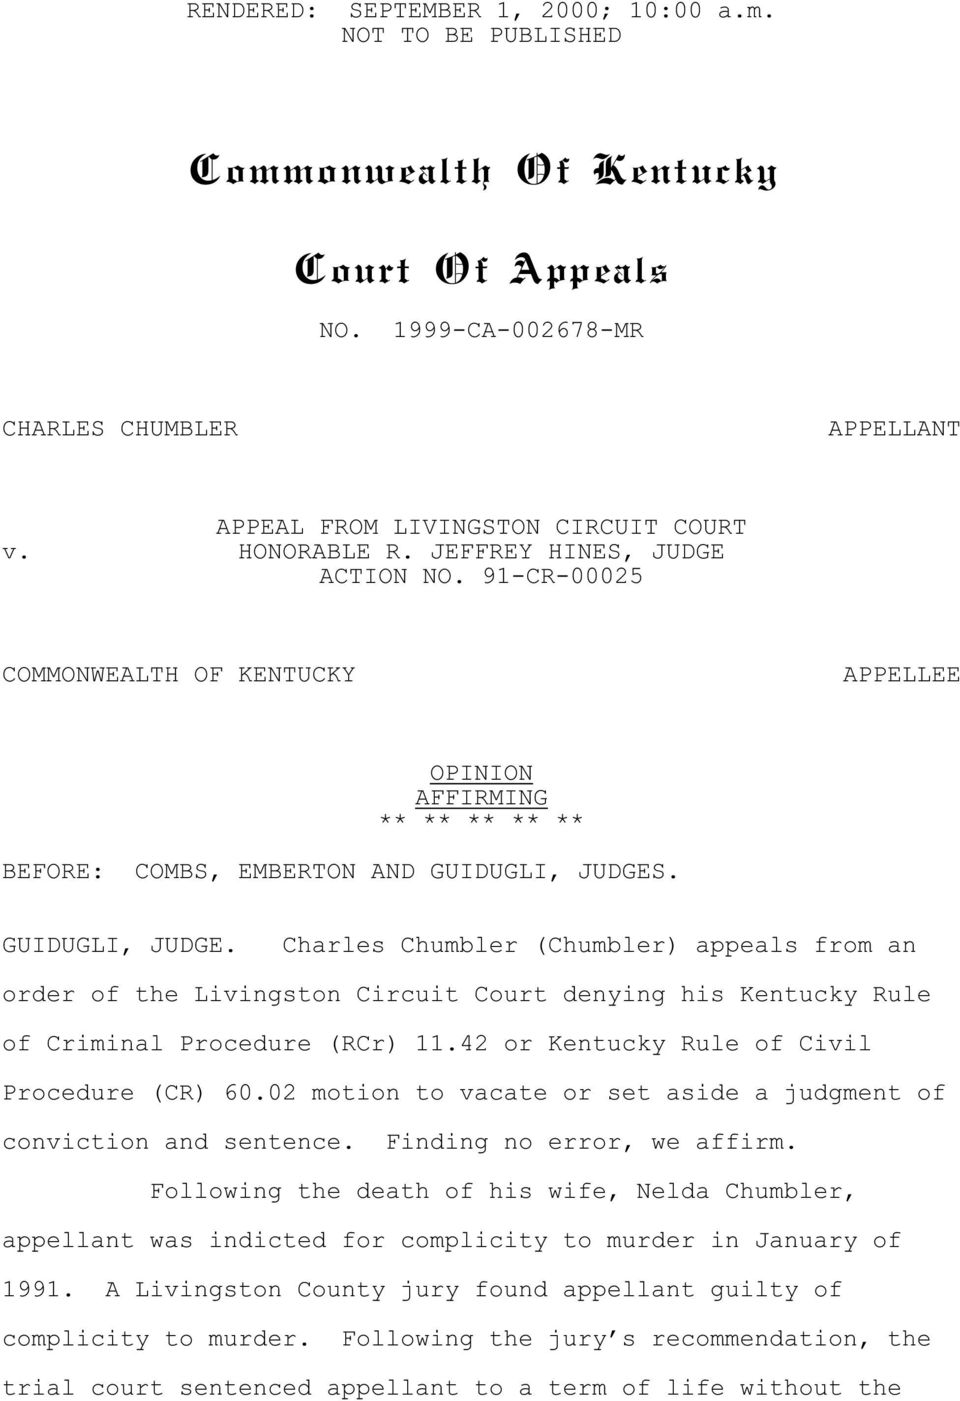 . GUIDUGLI, JUDGE. Charles Chumbler (Chumbler) appeals from an order of the Livingston Circuit Court denying his Kentucky Rule of Criminal Procedure (RCr) 11.